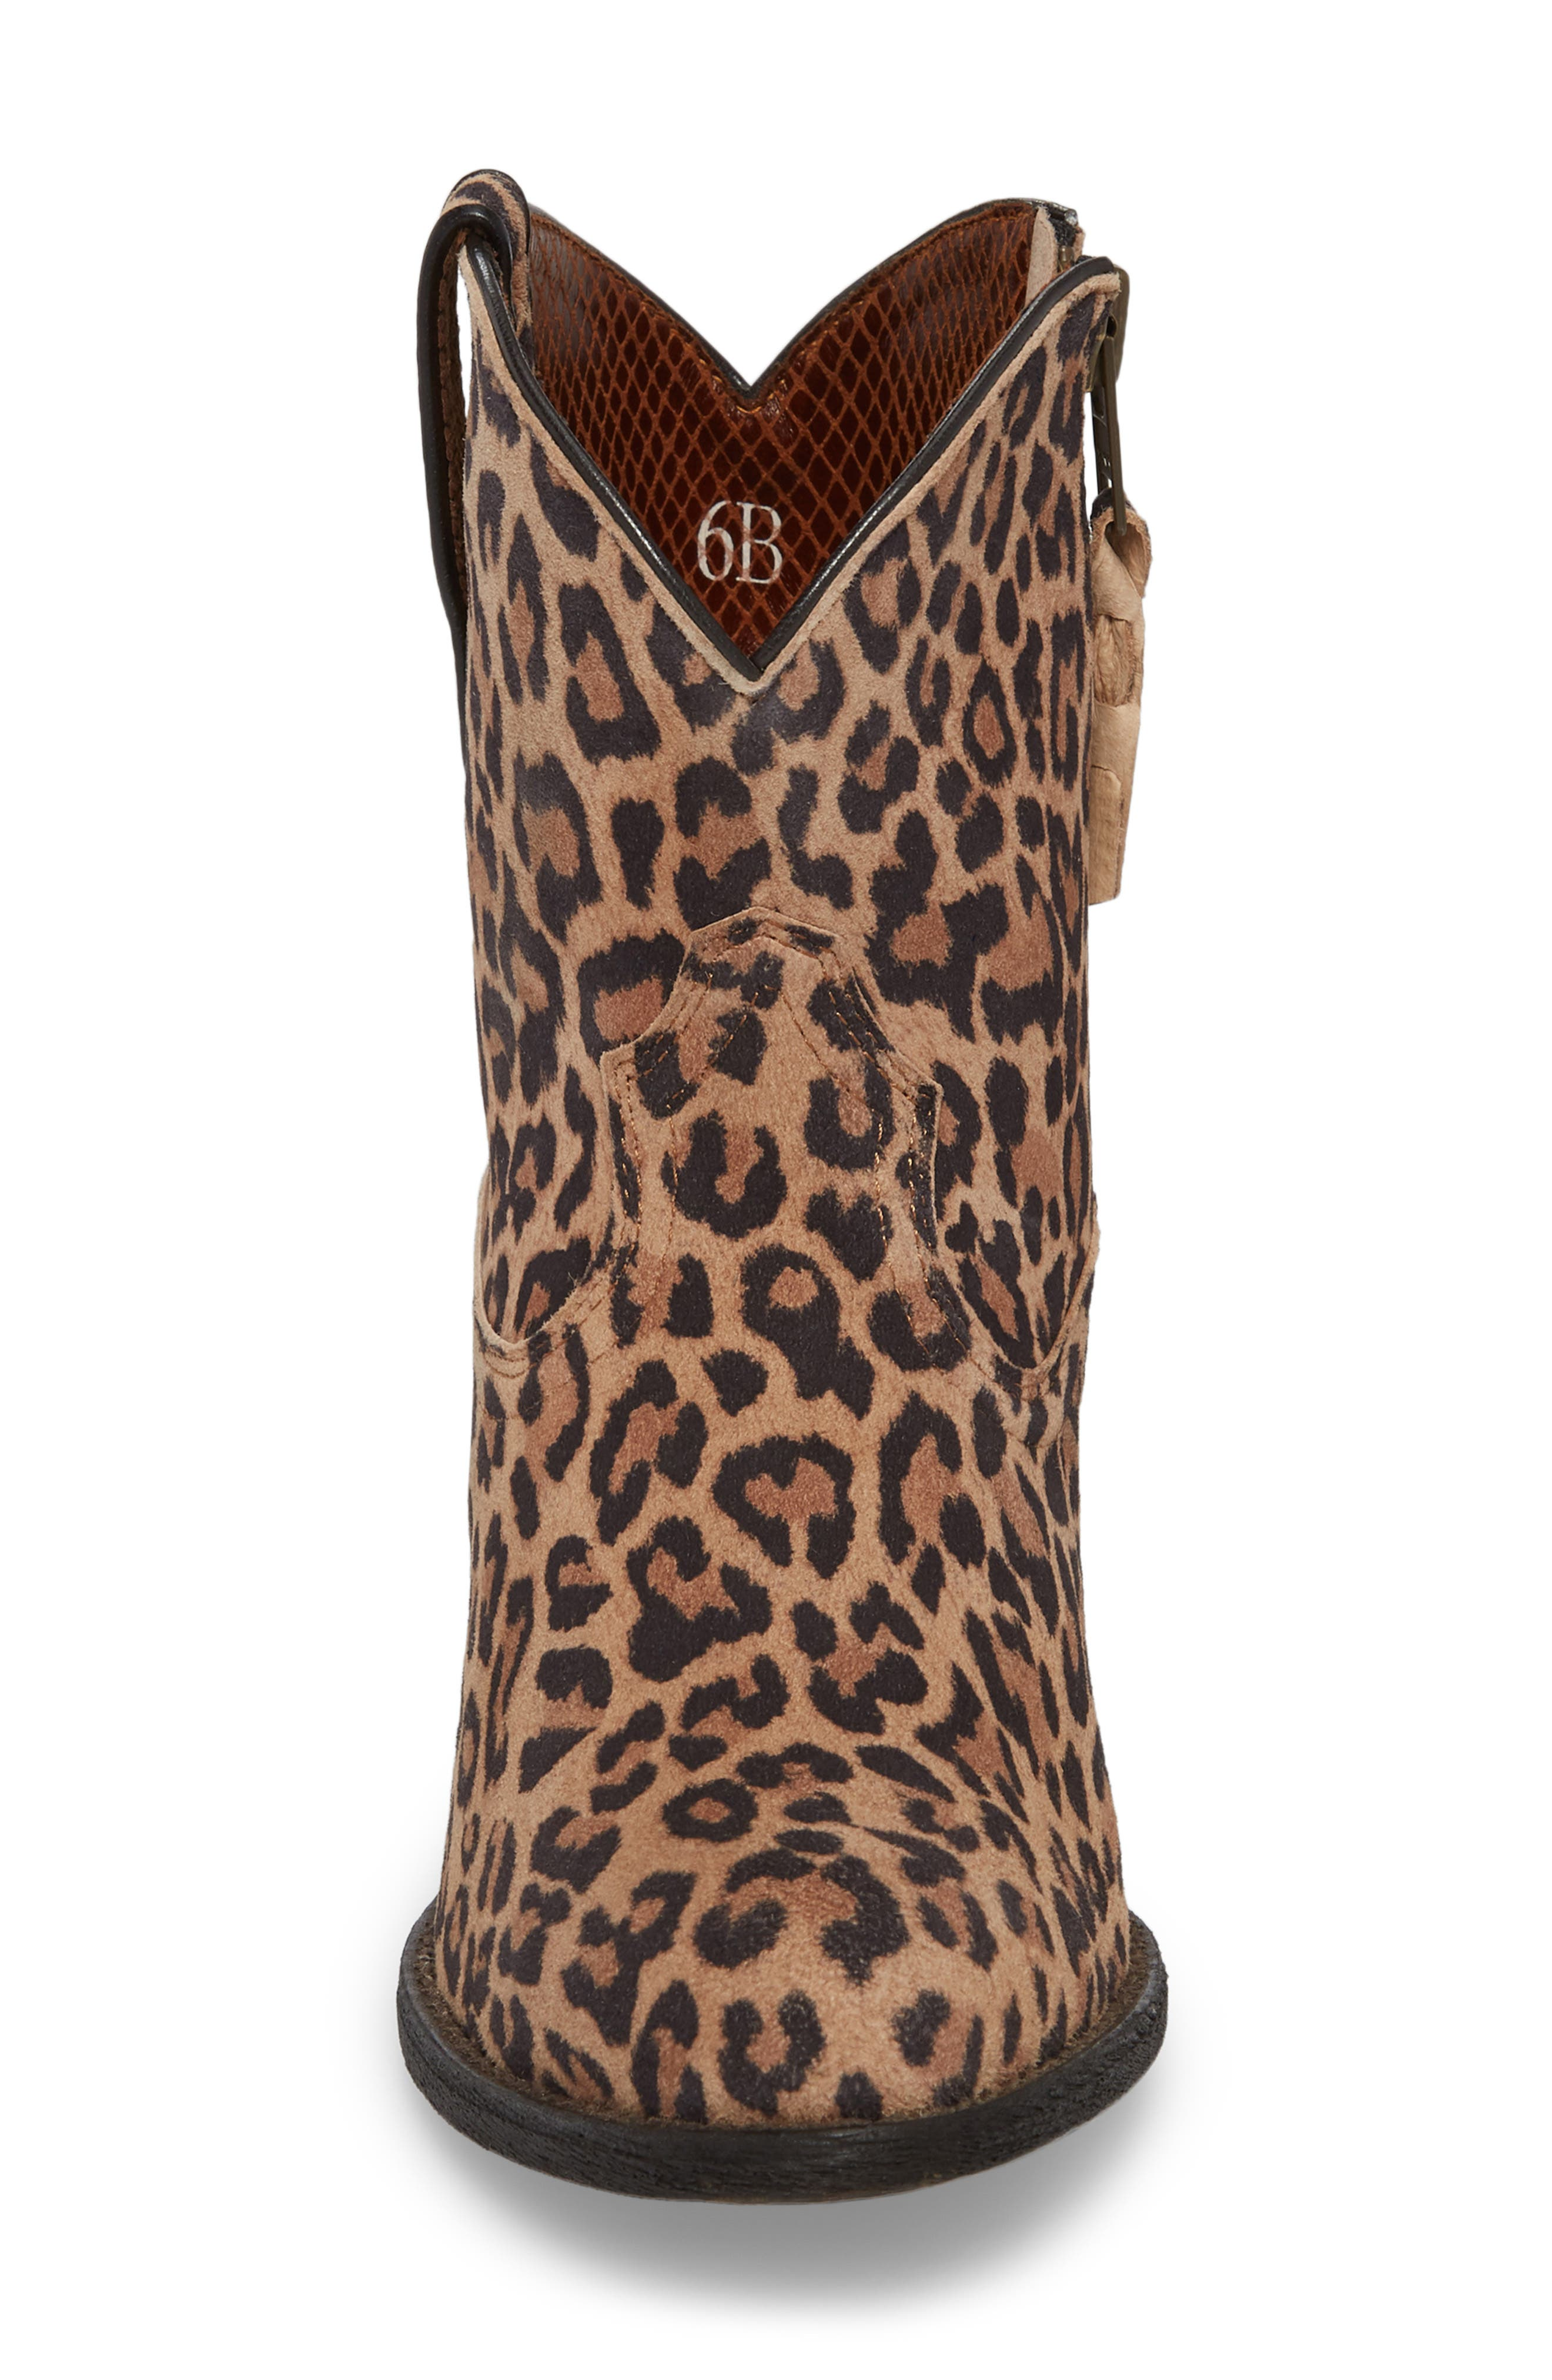 Darlin Short Western Boot,                             Alternate thumbnail 4, color,                             LEOPARD PRINT LEATHER